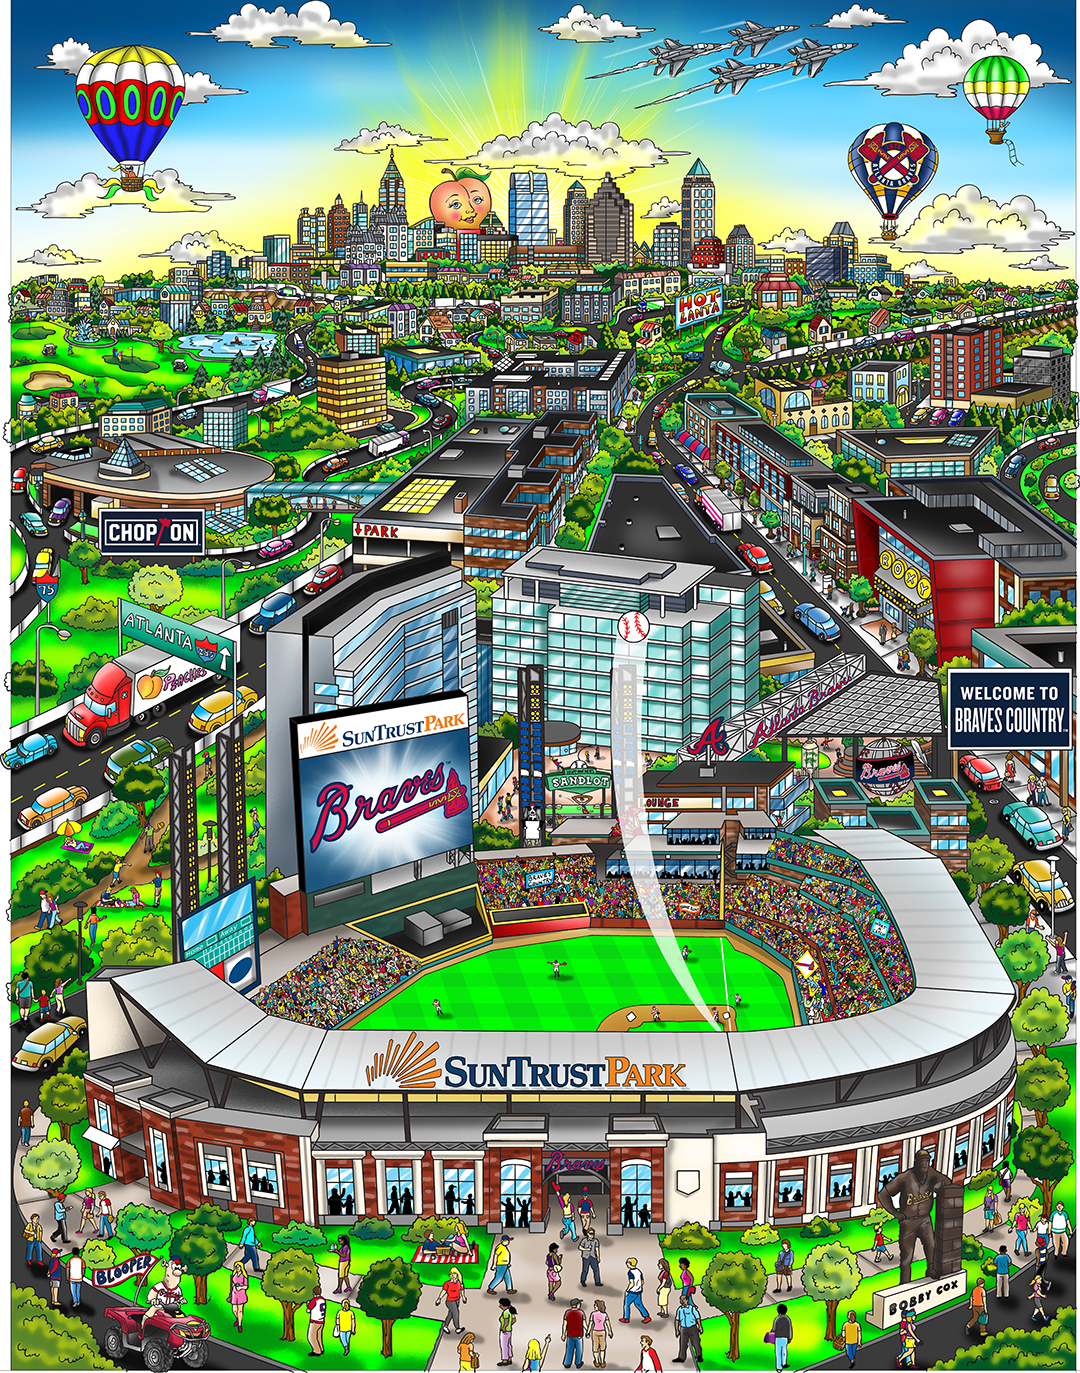 Sun Trust Park, Atlanta skyline, hot air balloons and a giant peach. Atlanta Braves 3D Pop Art commissioned baseball piece by Charles Fazzino of Sun Trust Park